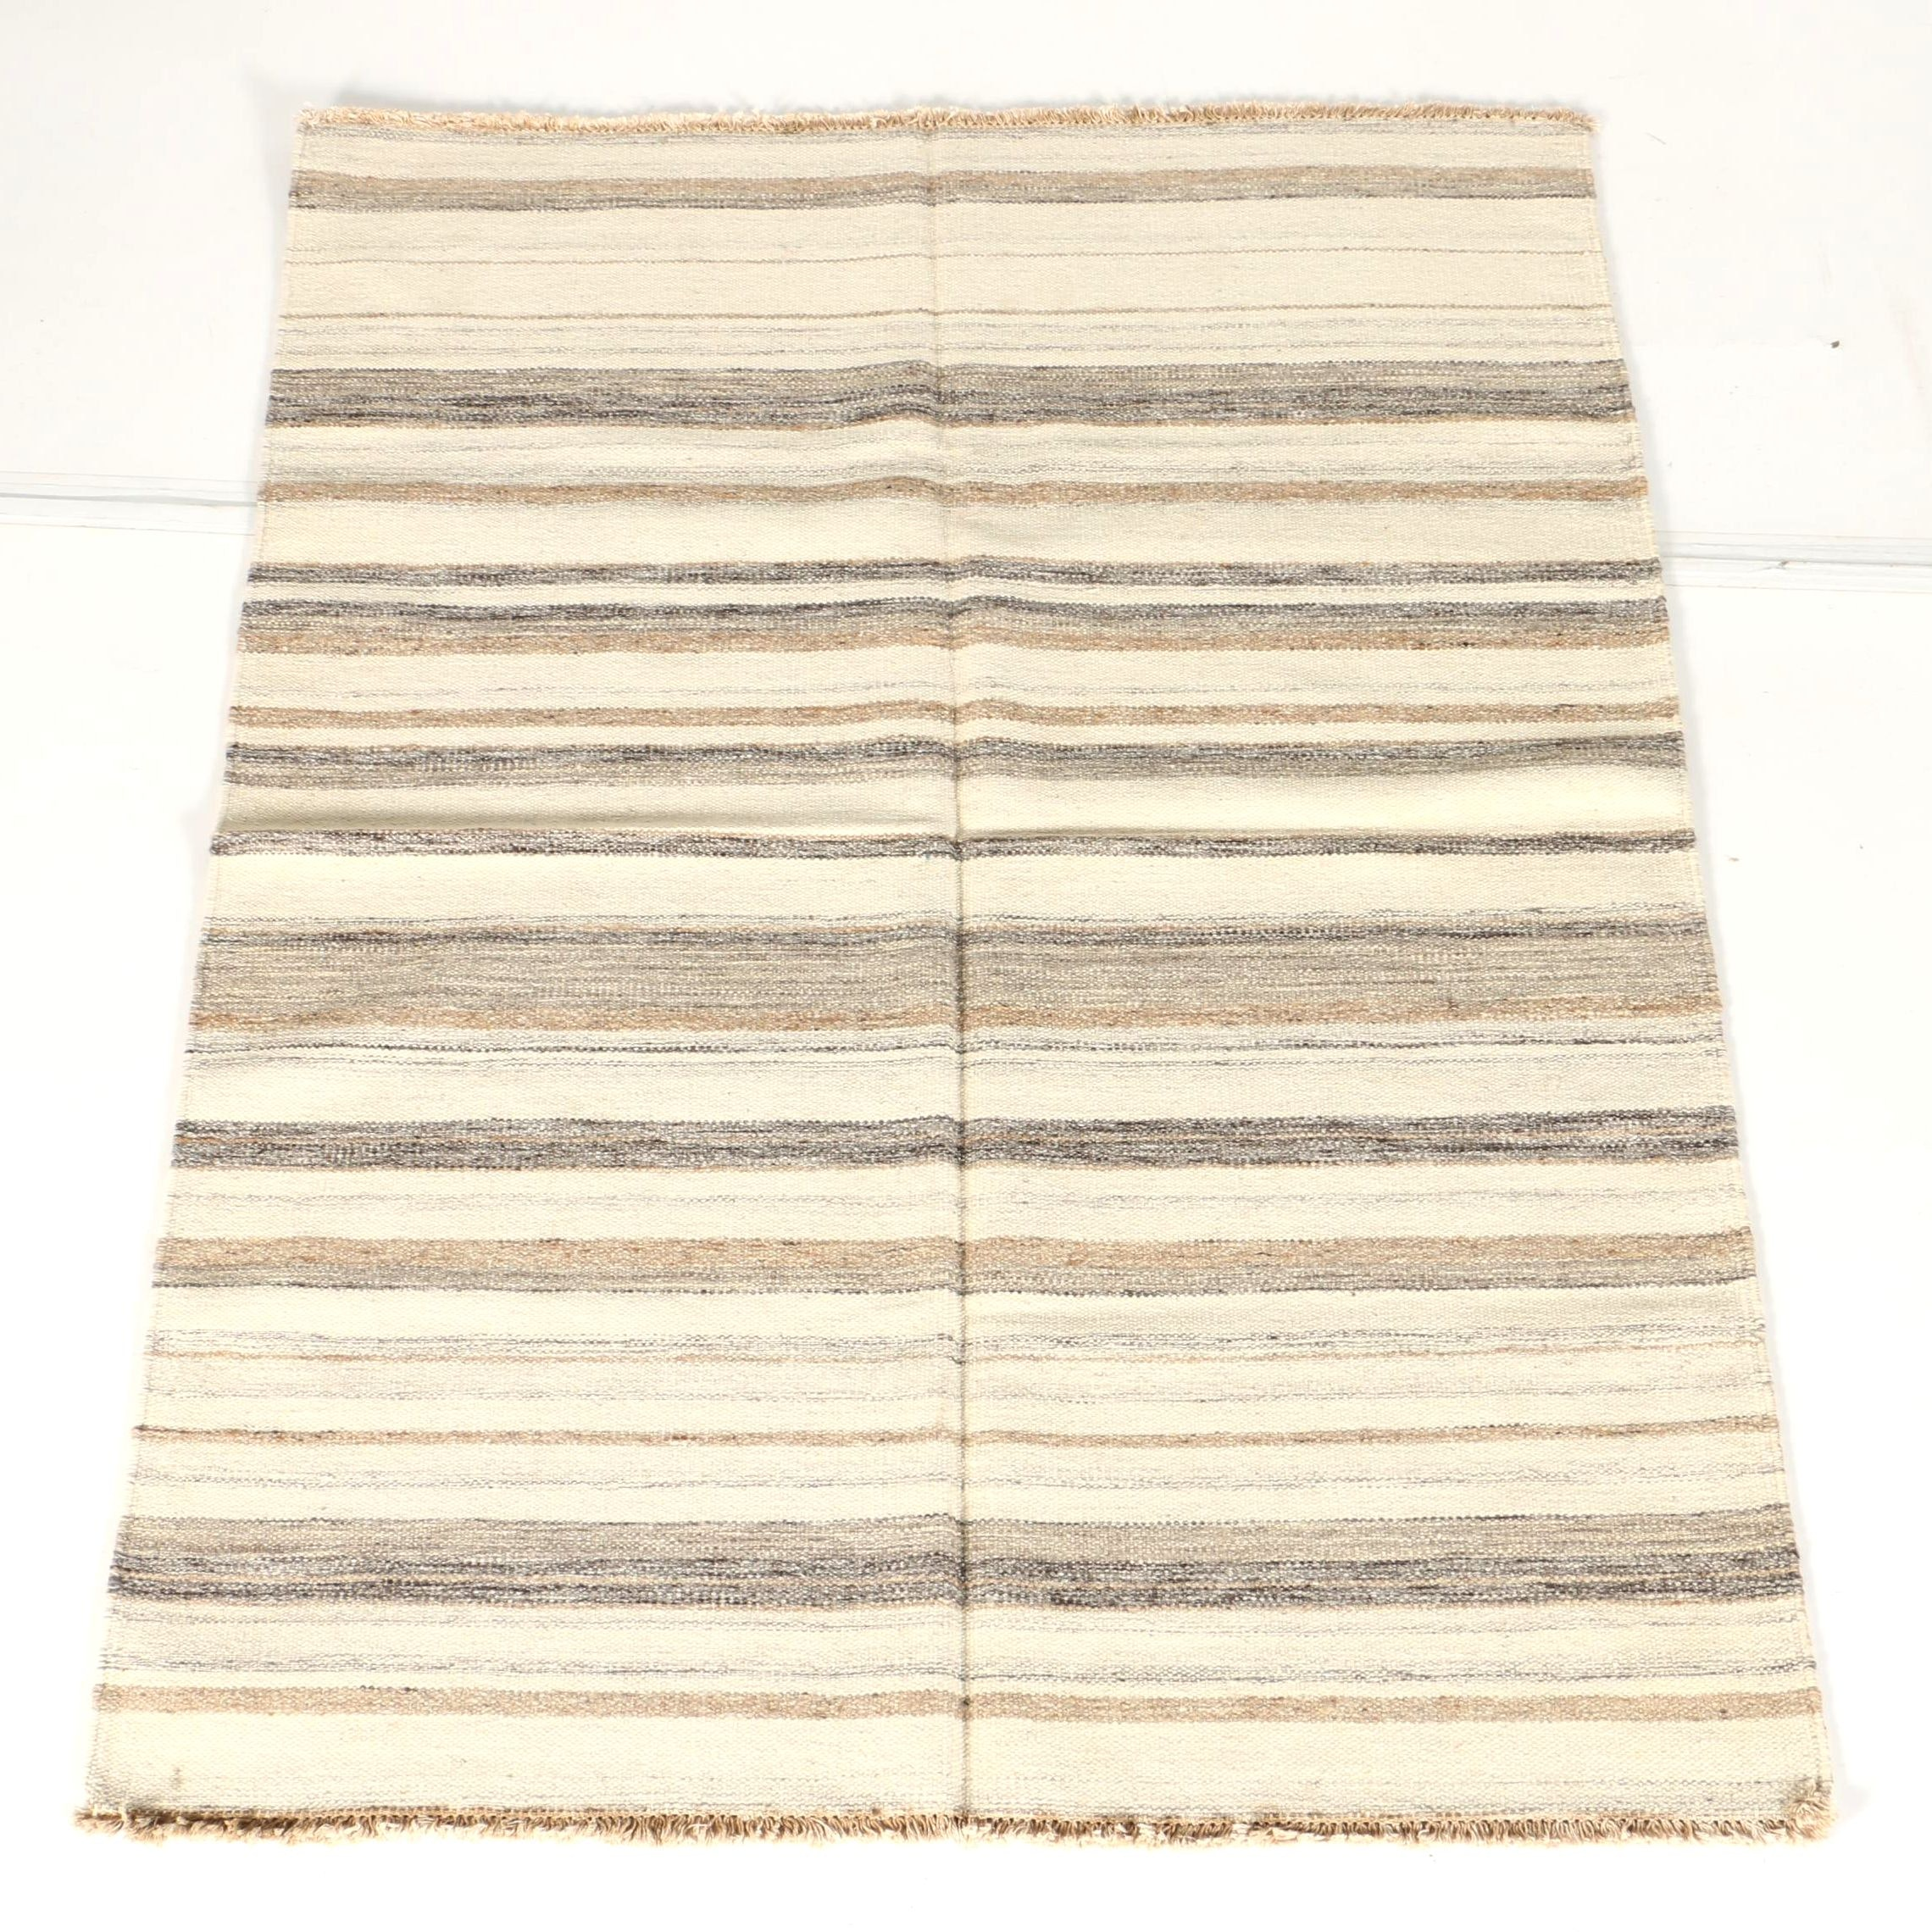 Handwoven Flat Weave Striped Area Rug